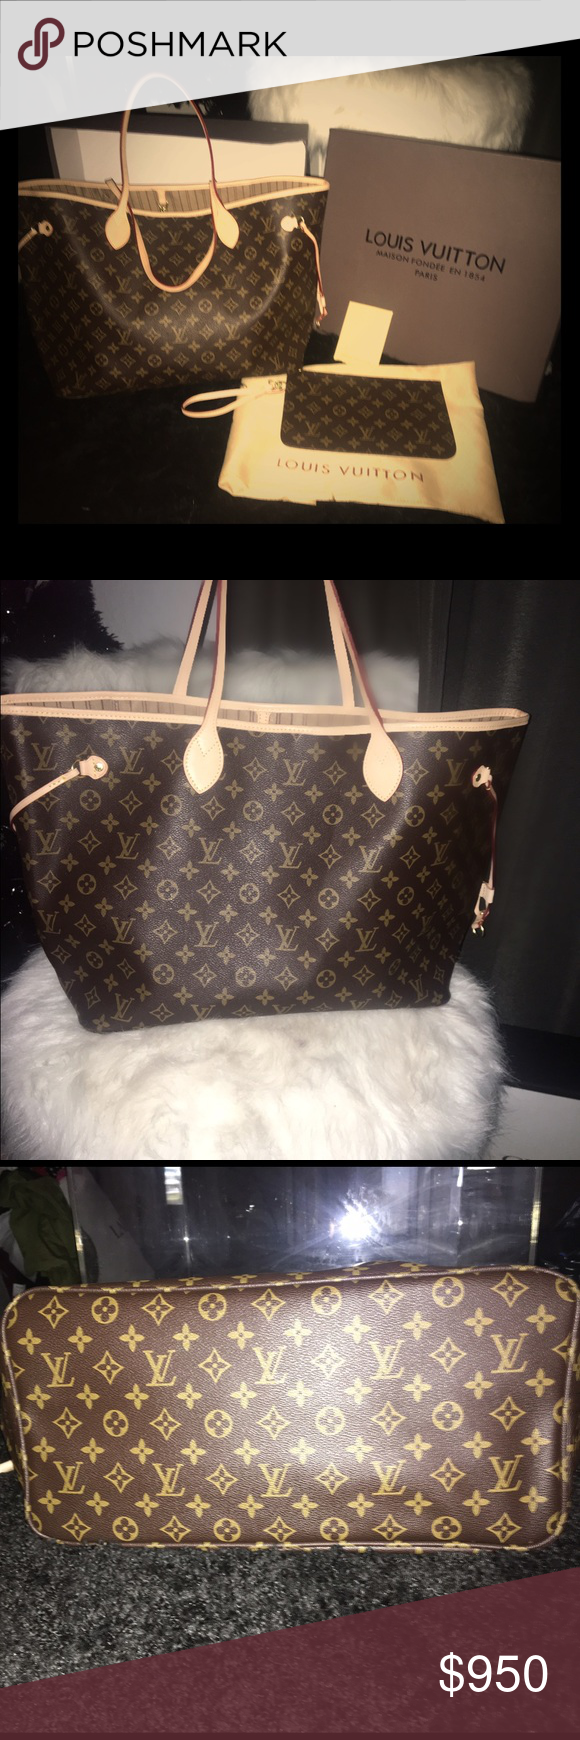 Louis Vuitton Neverfull GM Gorgeous Louis Vuitton Neverfull GM. Huge and big enough to throw in all your necessities and go. This is definitely an every day bag. In great condition. Includes box and dust bag. Louis Vuitton Bags Totes